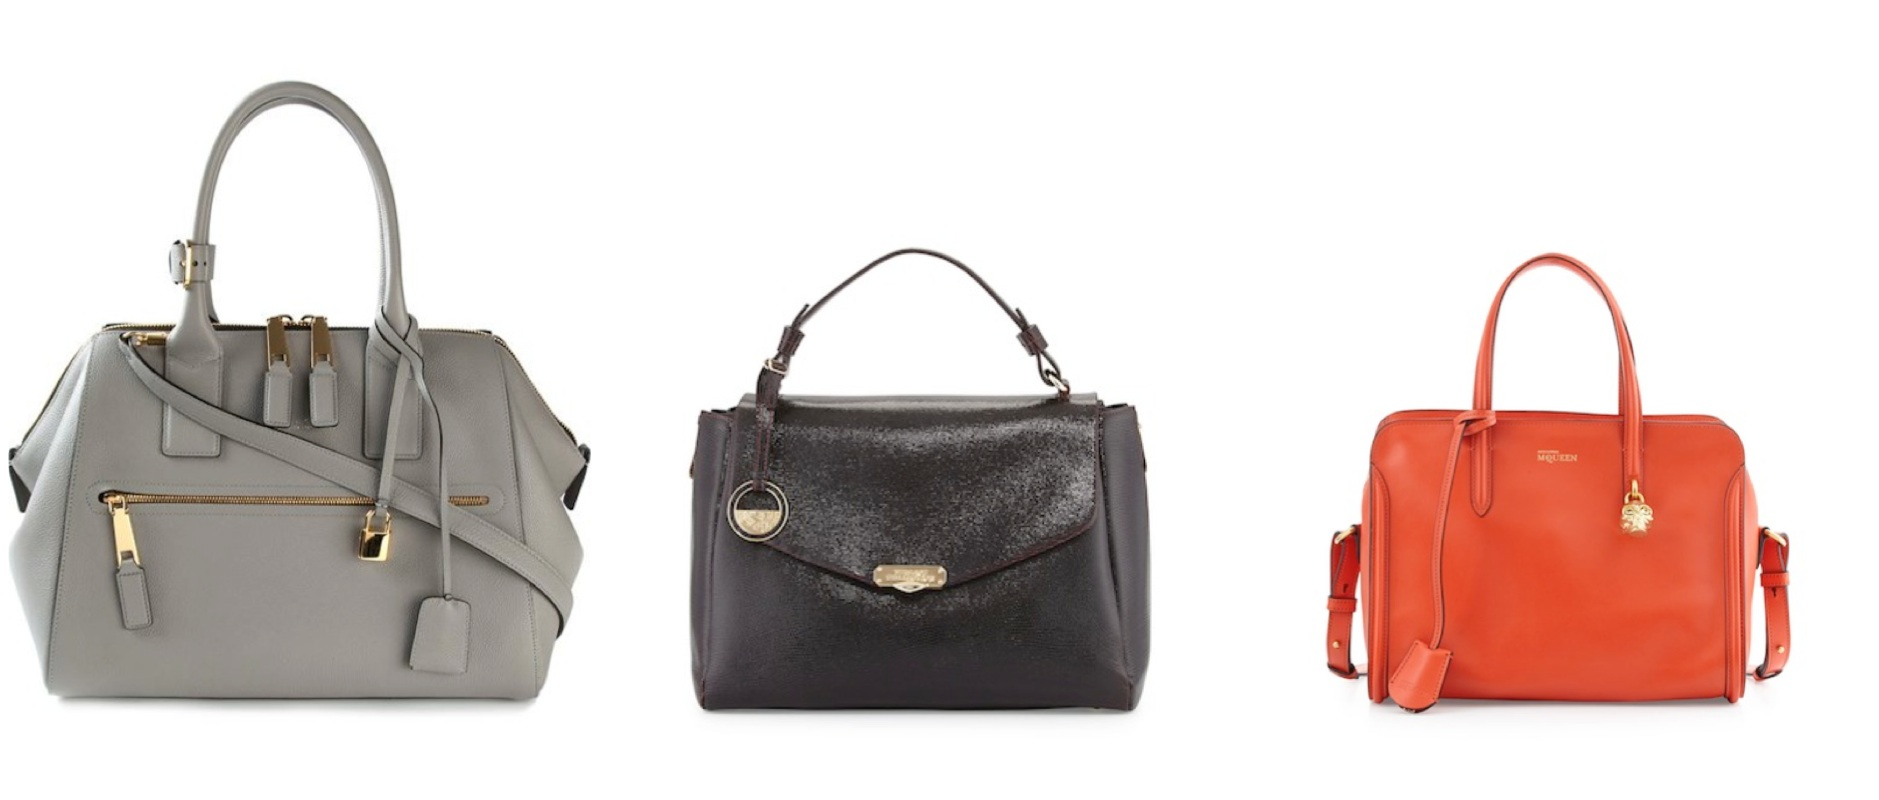 bags cate 3 2